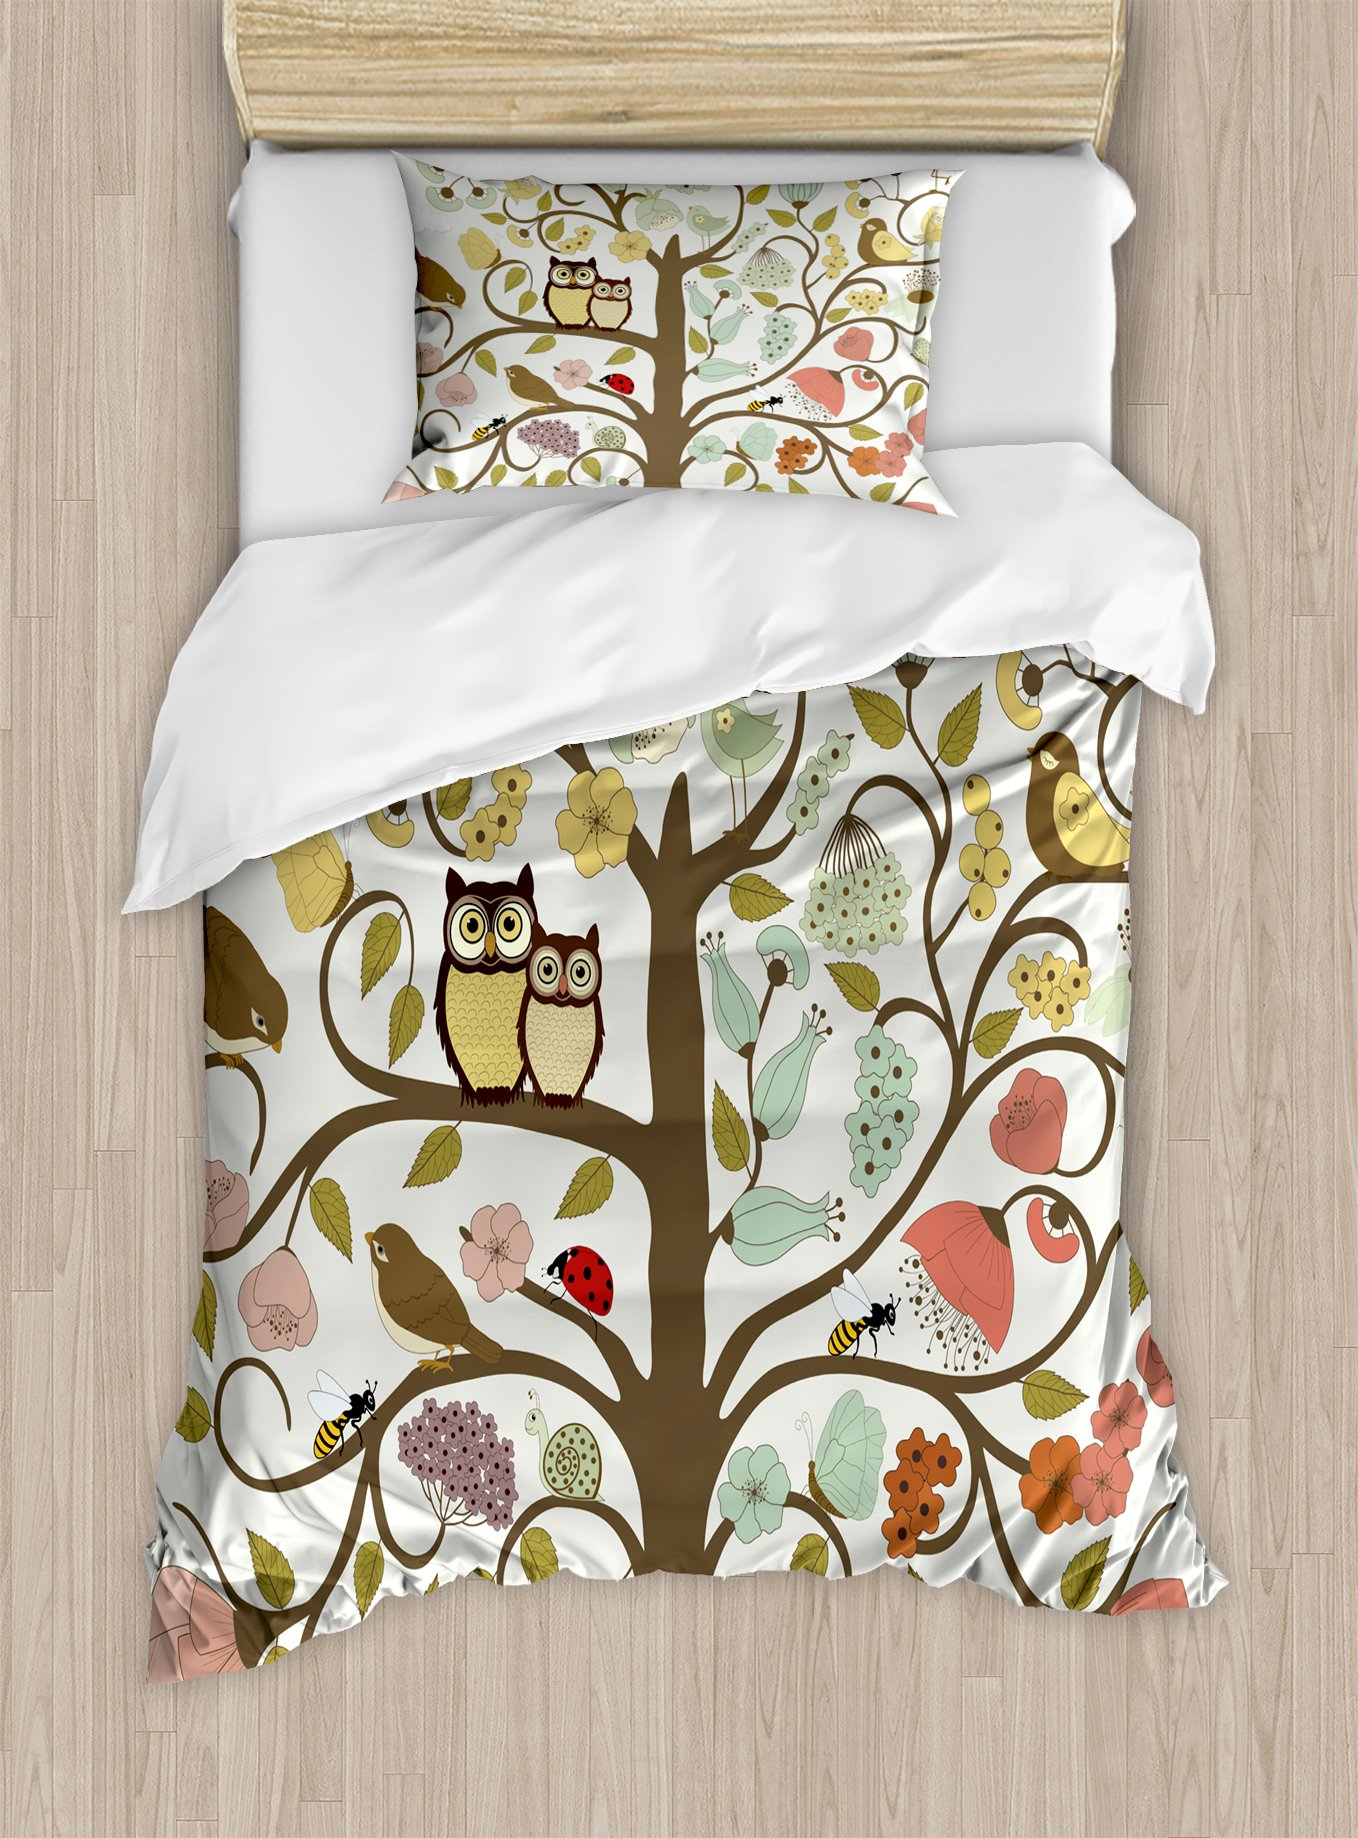 Ambesonne Animals Duvet Cover Set Twin Size, Retro Style Tree with Flowers Bugs and Bees Owl Birds Insects Vintage, Decorative 2 Piece Bedding Set with 1 Pillow Sham, Almond Green Eggshell